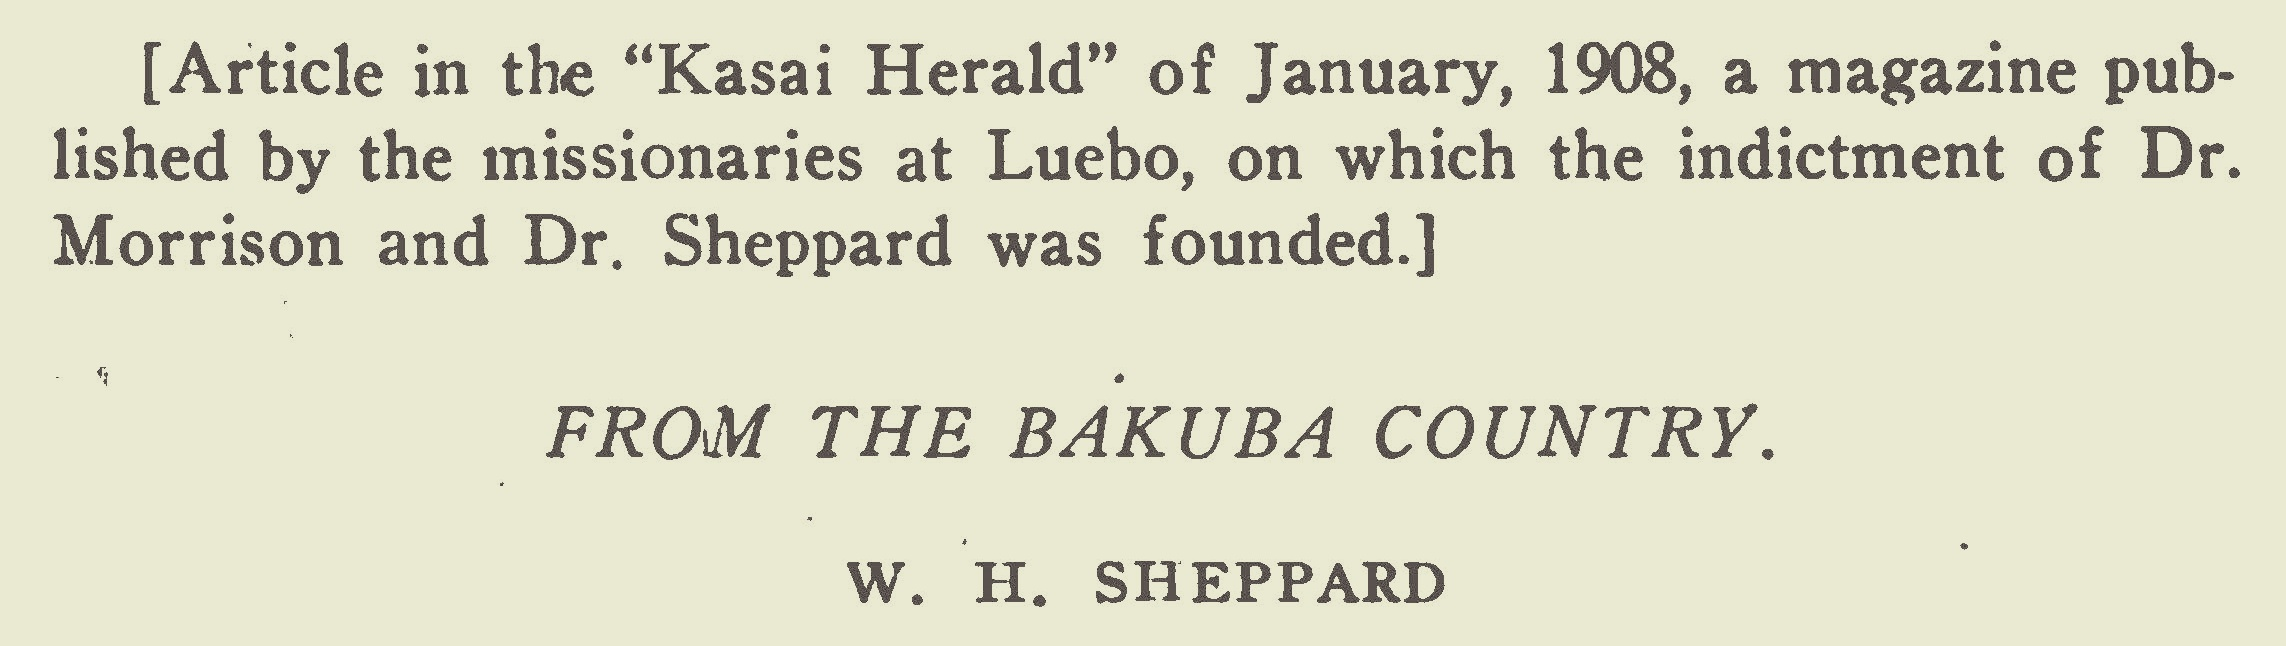 Sheppard, William Henry, From the Bakuba Country Title Page.jpg